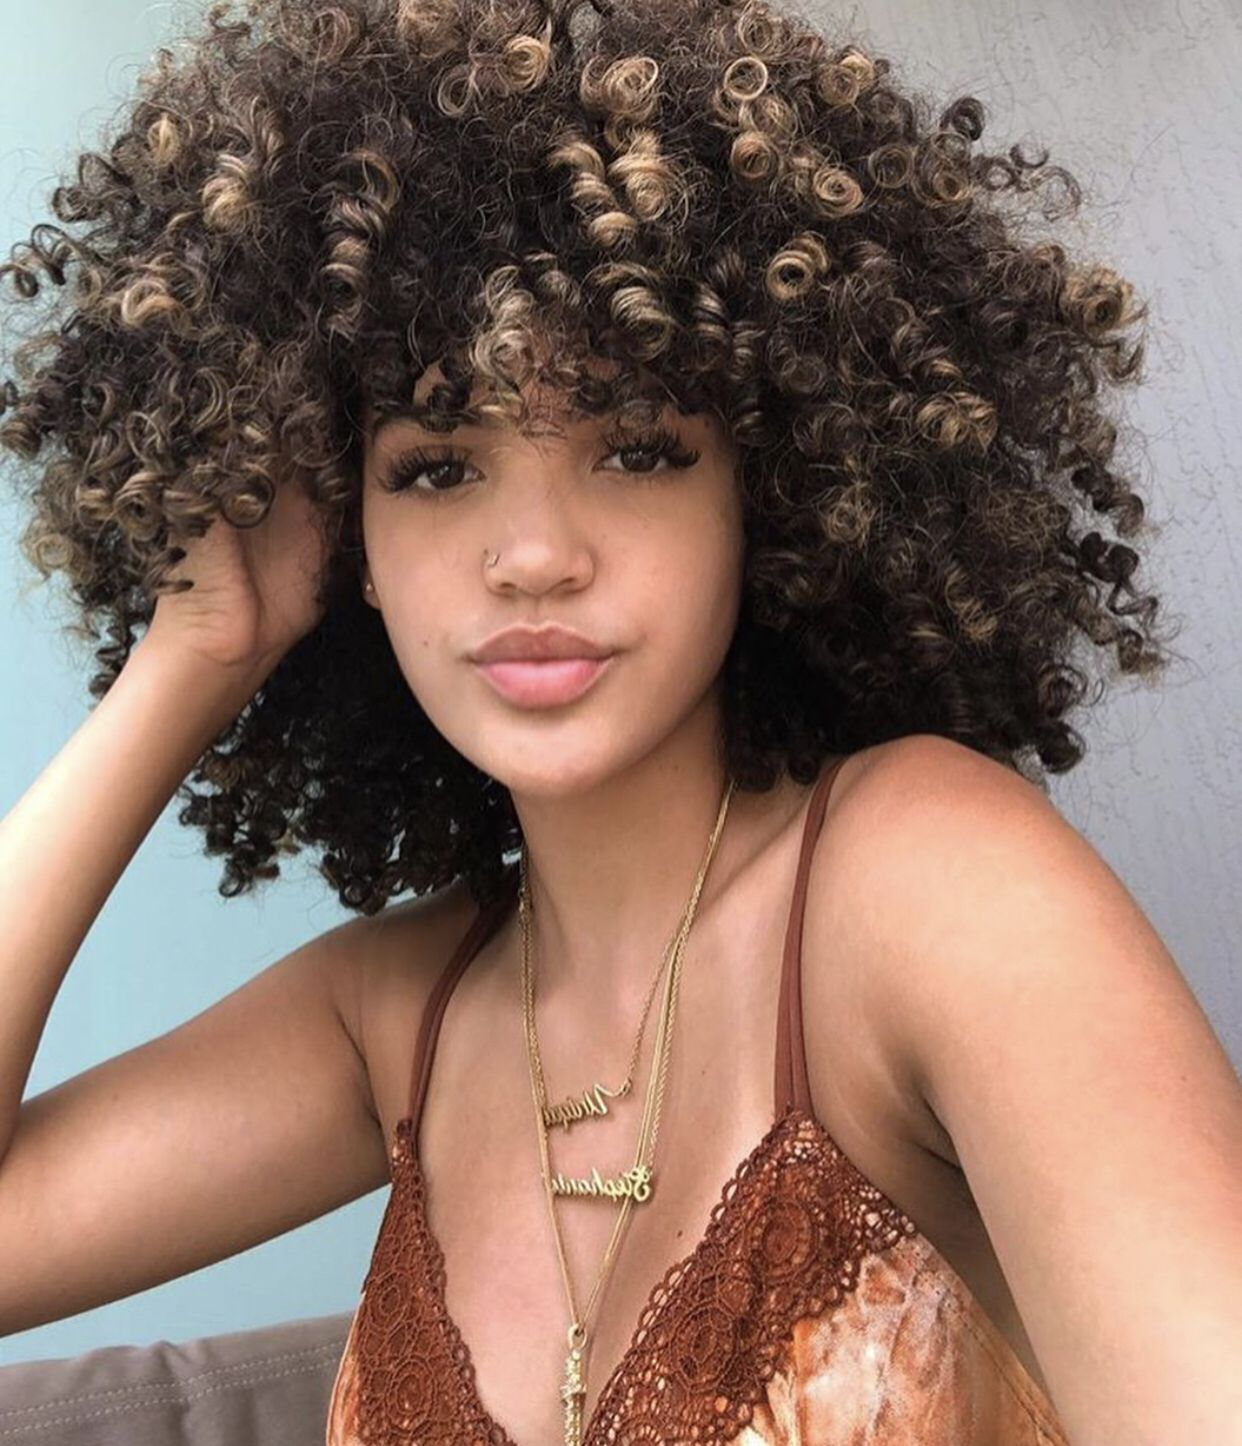 Pinterest Lilrynn Curly Hair Inspiration Curly Afro Hair Curly Hair Styles